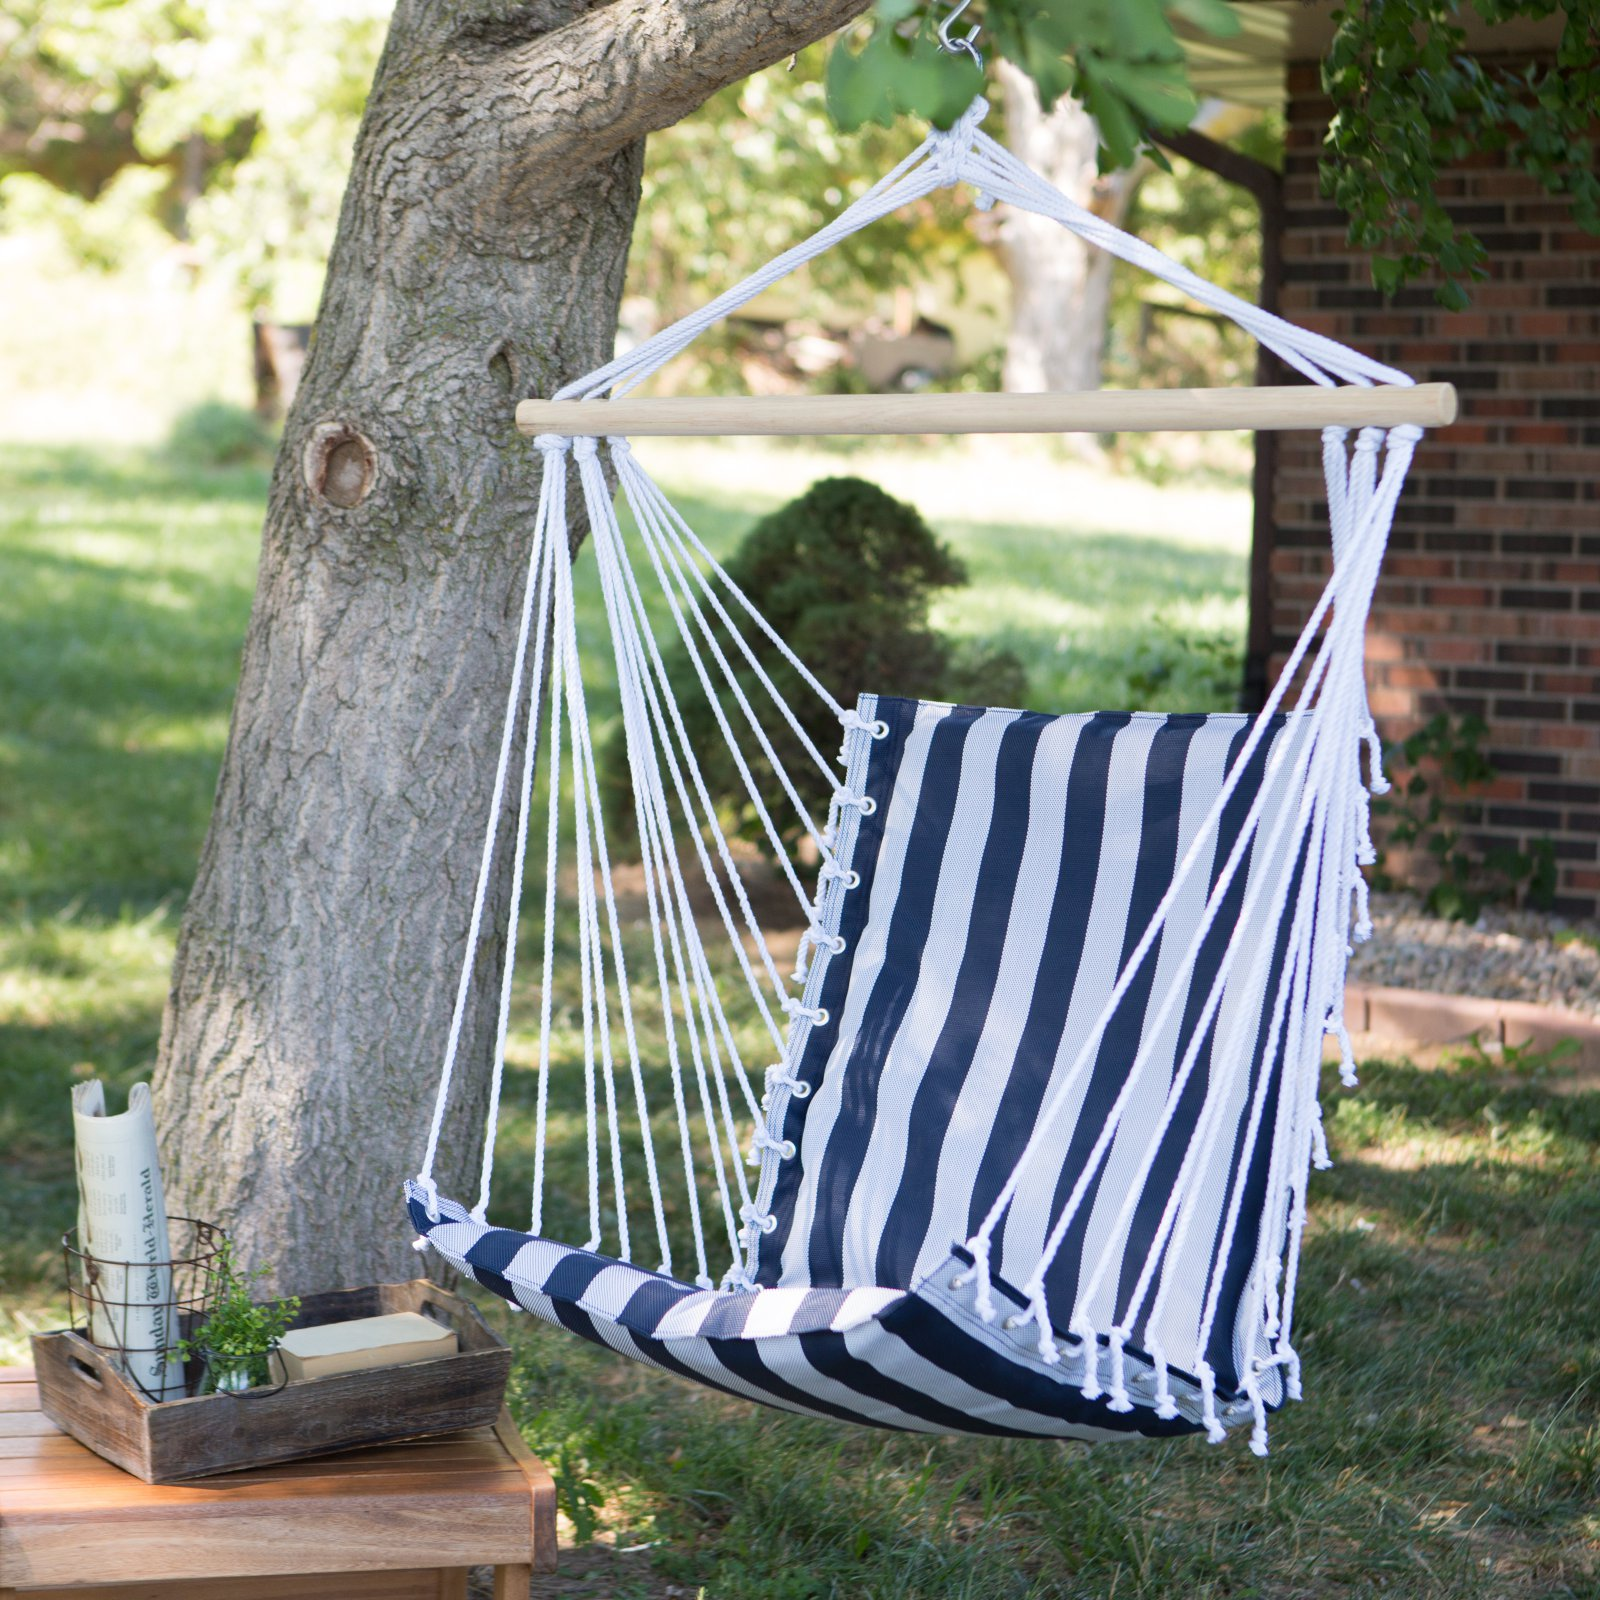 The Ultimate Padded Mesh Hanging Hammock Chair - Navy Stripes